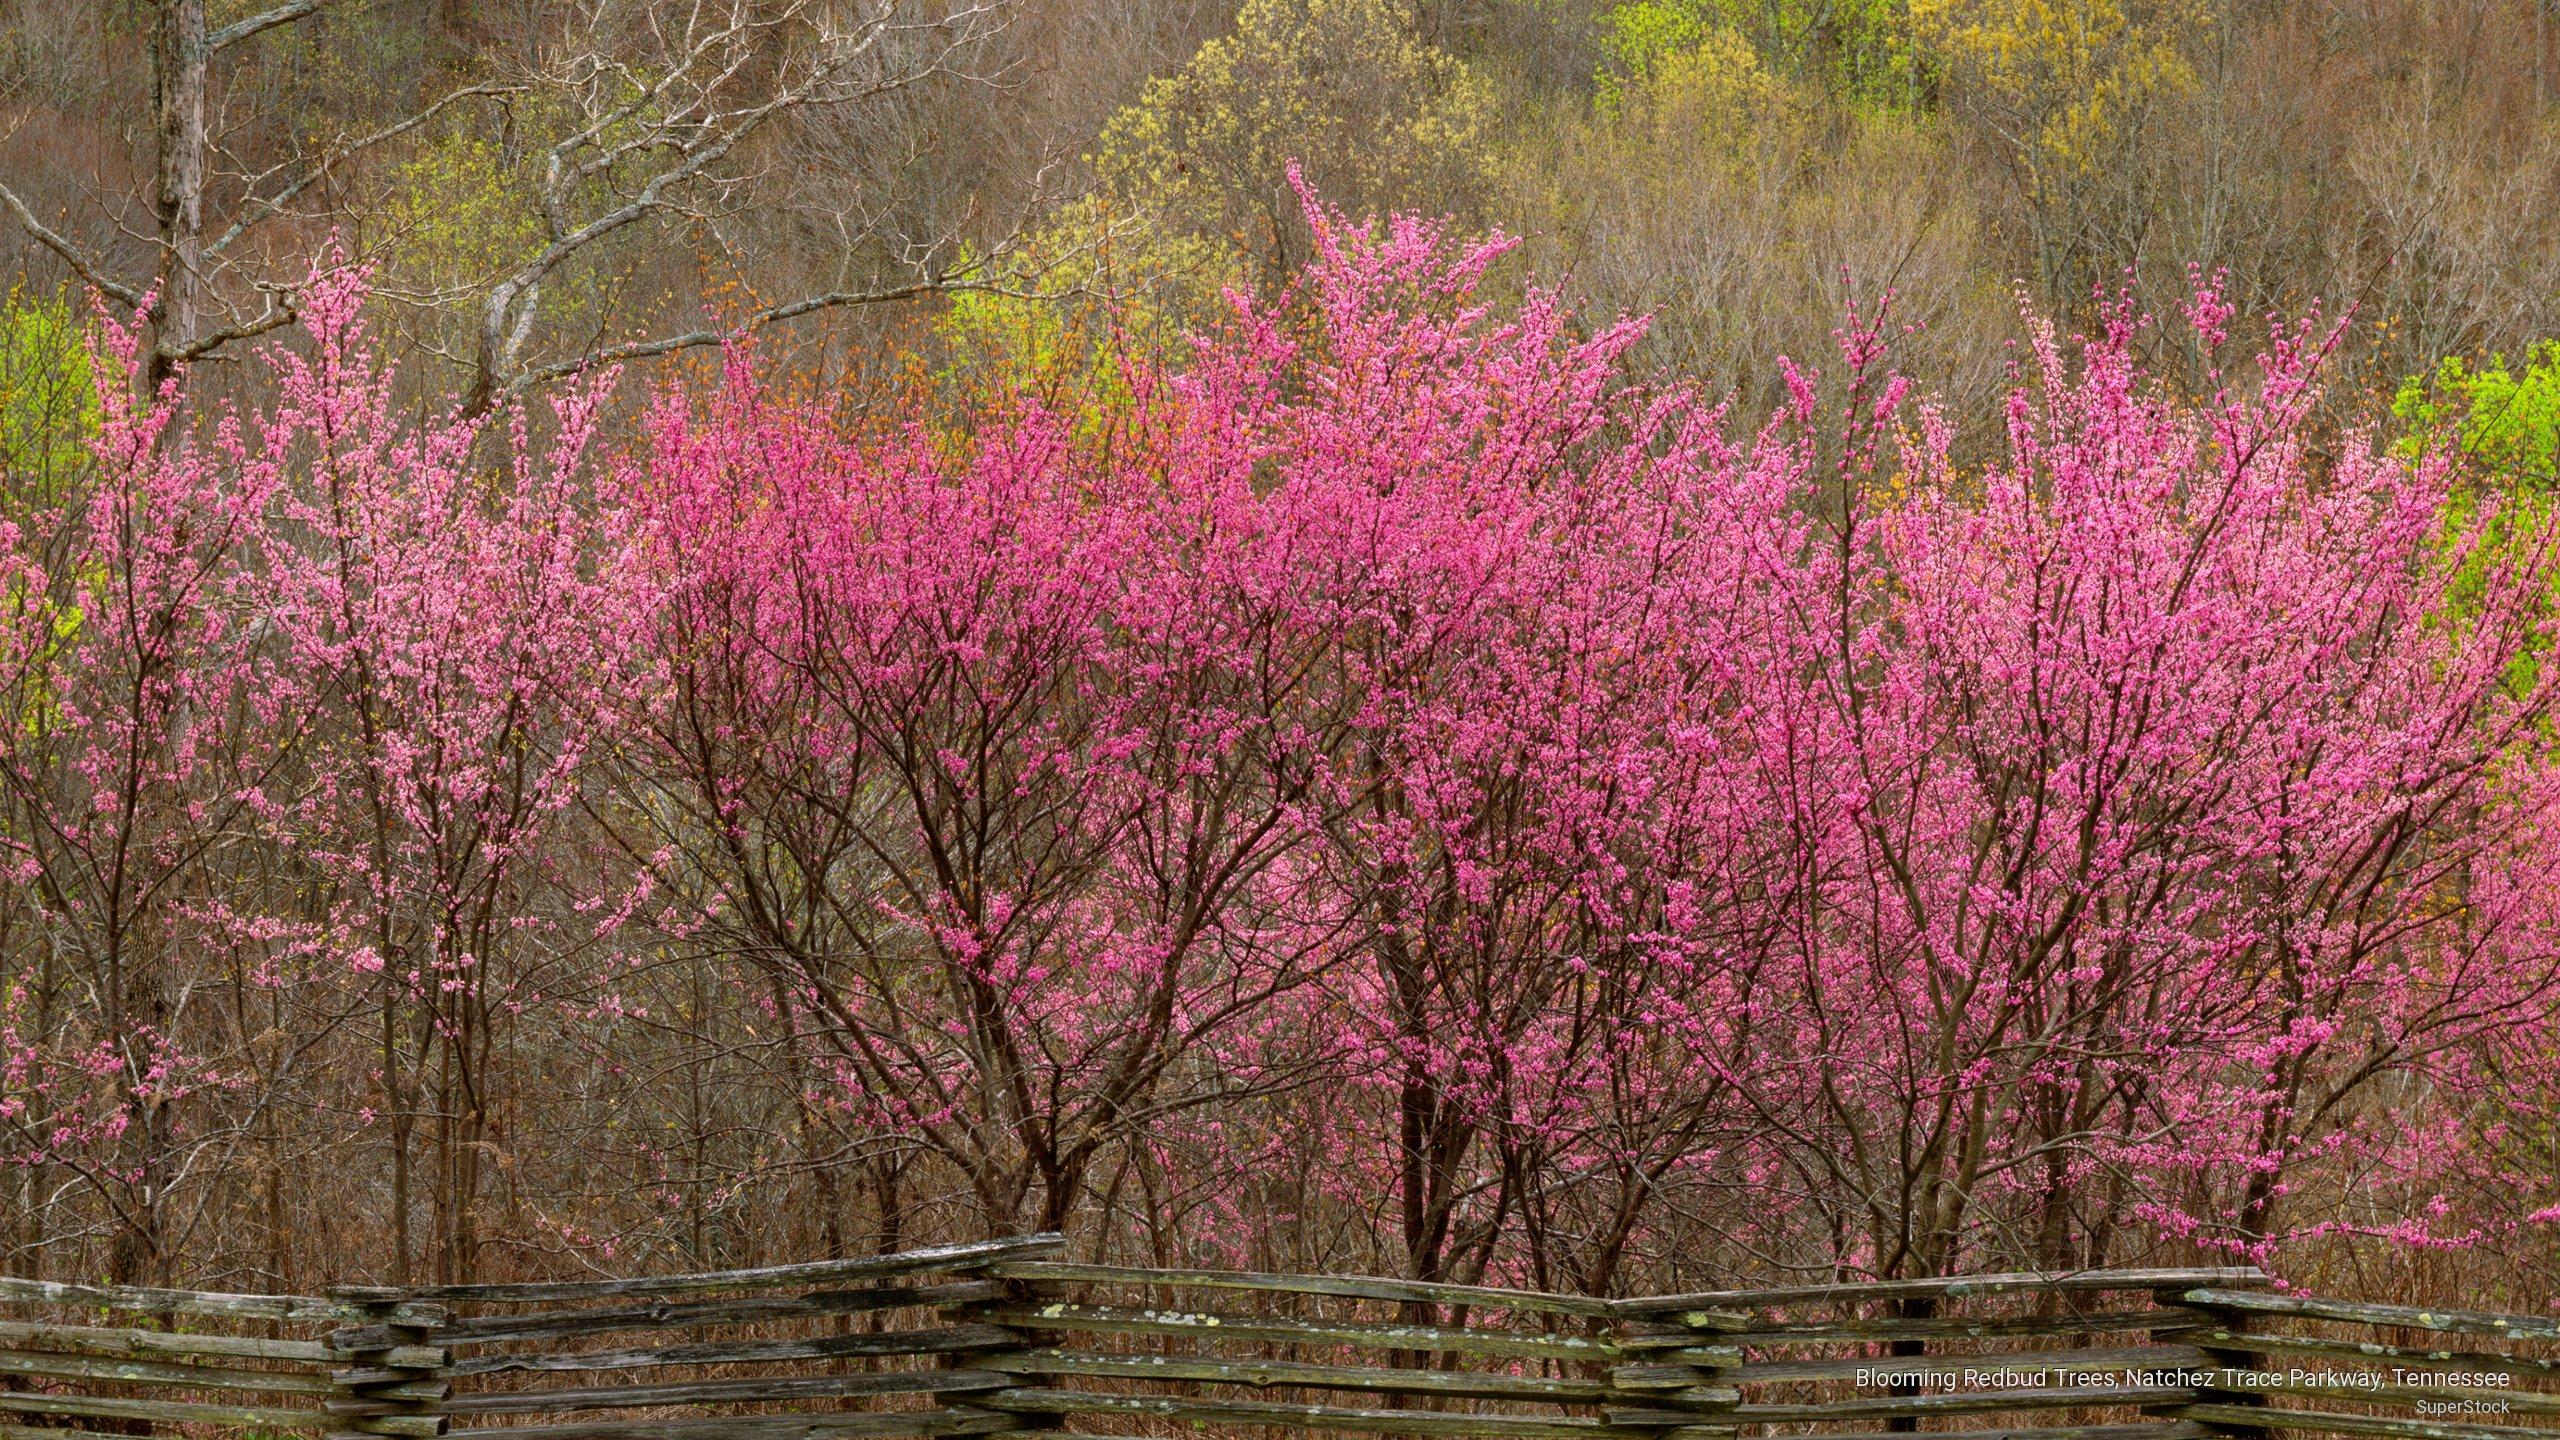 Blooming Redbud Trees, Natchez Trace Parkway, Tennessee